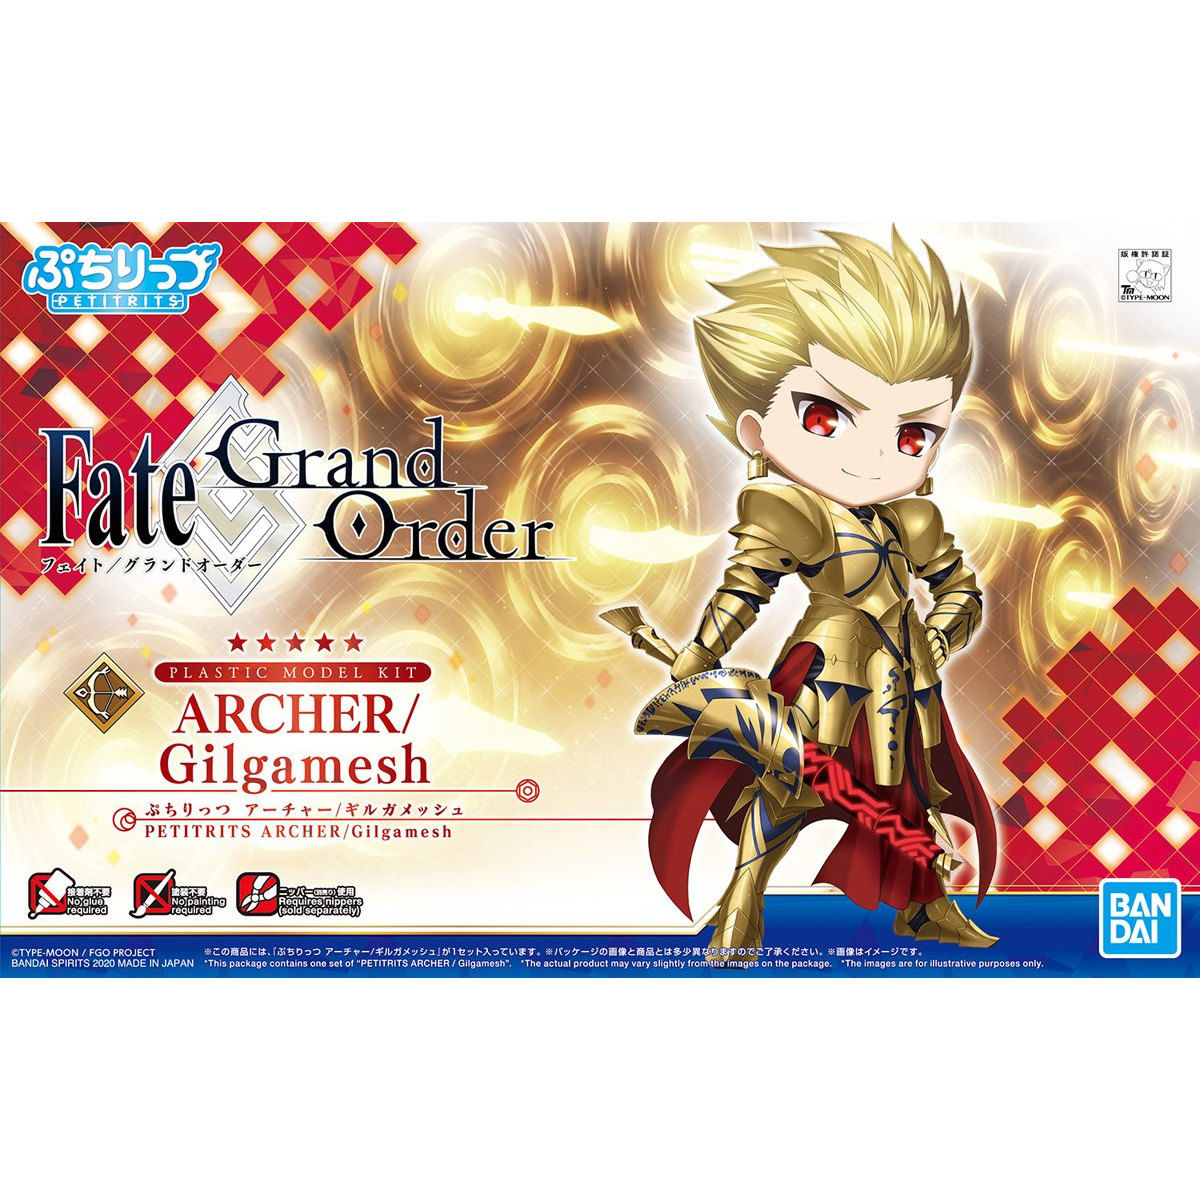 [Fate Grand Order] Petitrits Archer / Gilgamesh will be released this week (updating images)